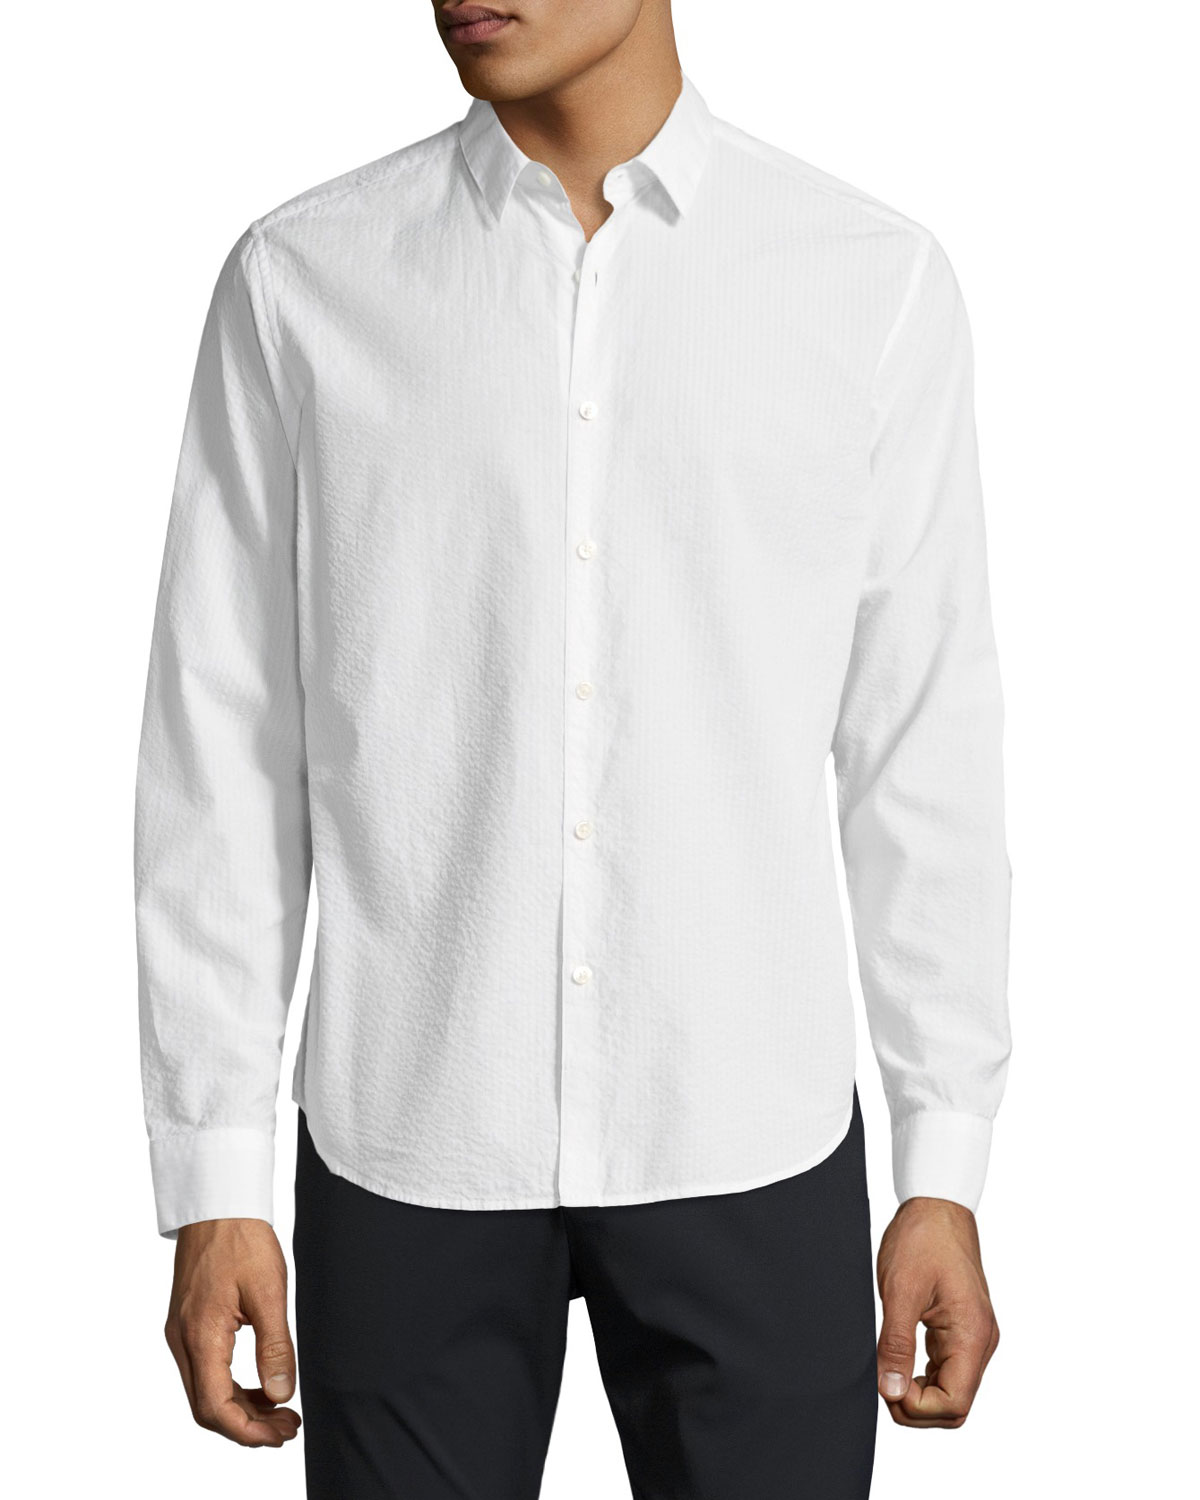 Zack Seersucker Cotton Shirt, White